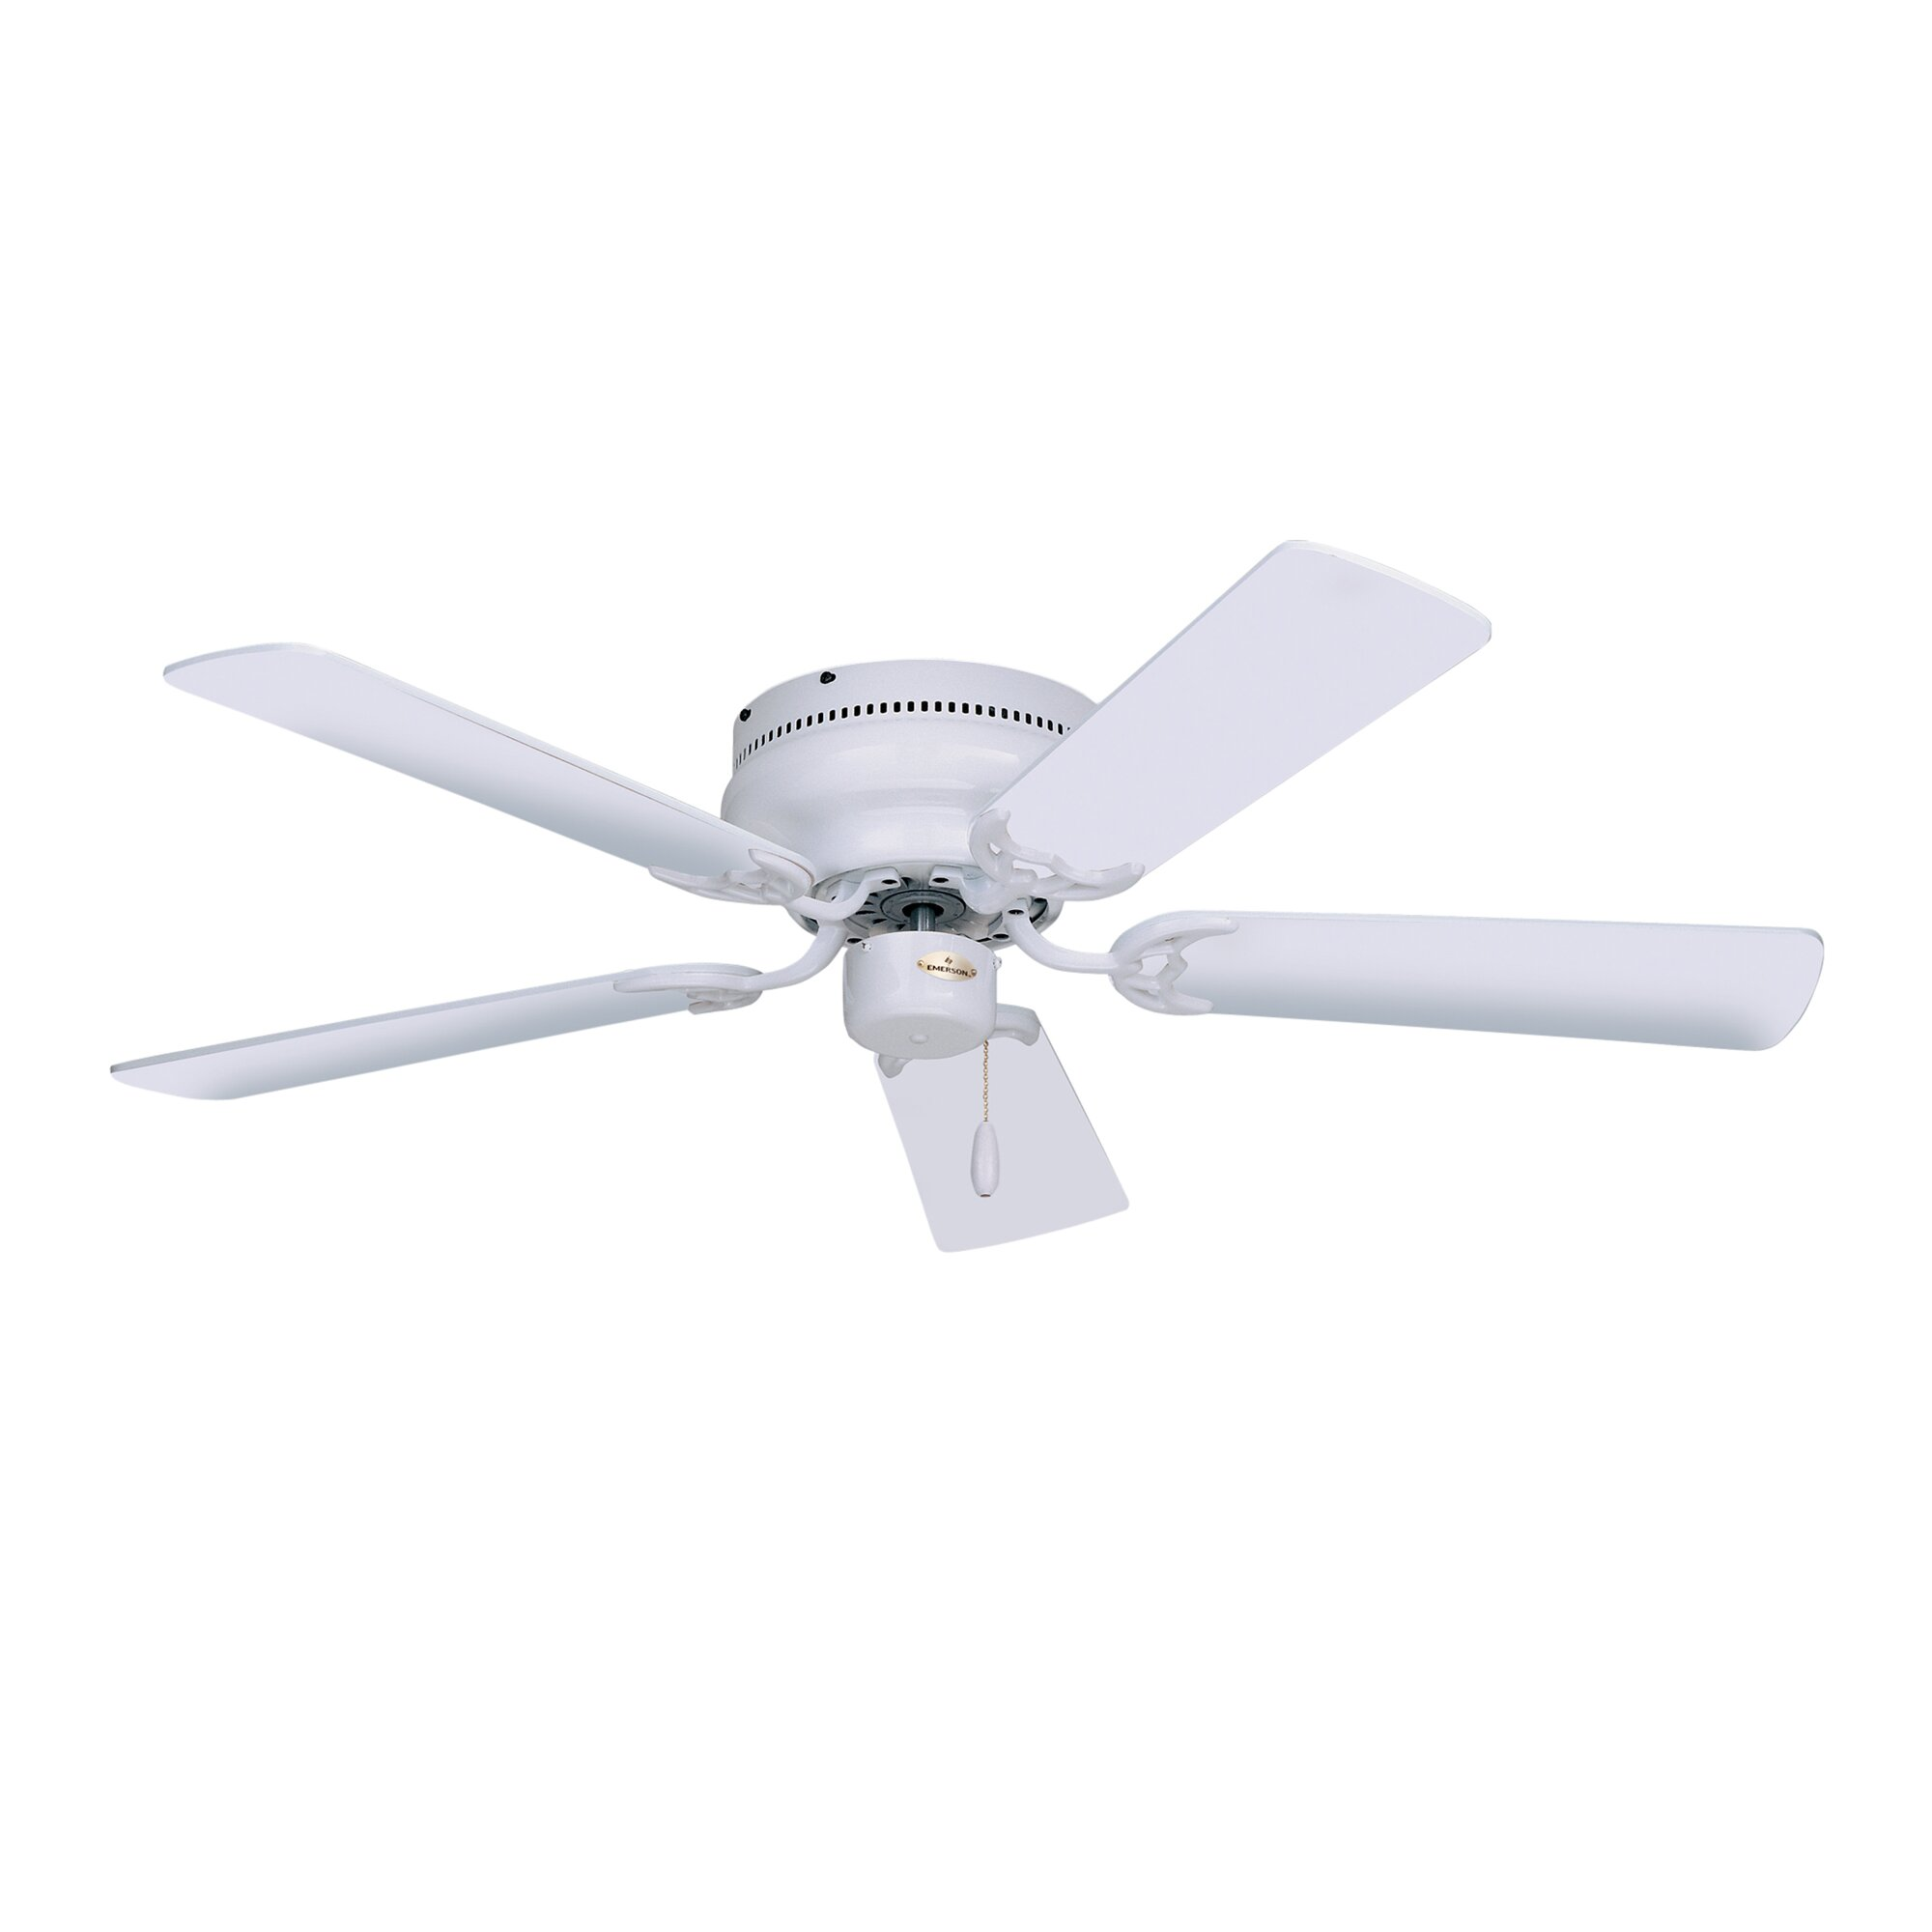 Emerson Fans 52 Snugger 28 Images Prima Ceiling Fan Model Cf905orb Little Max